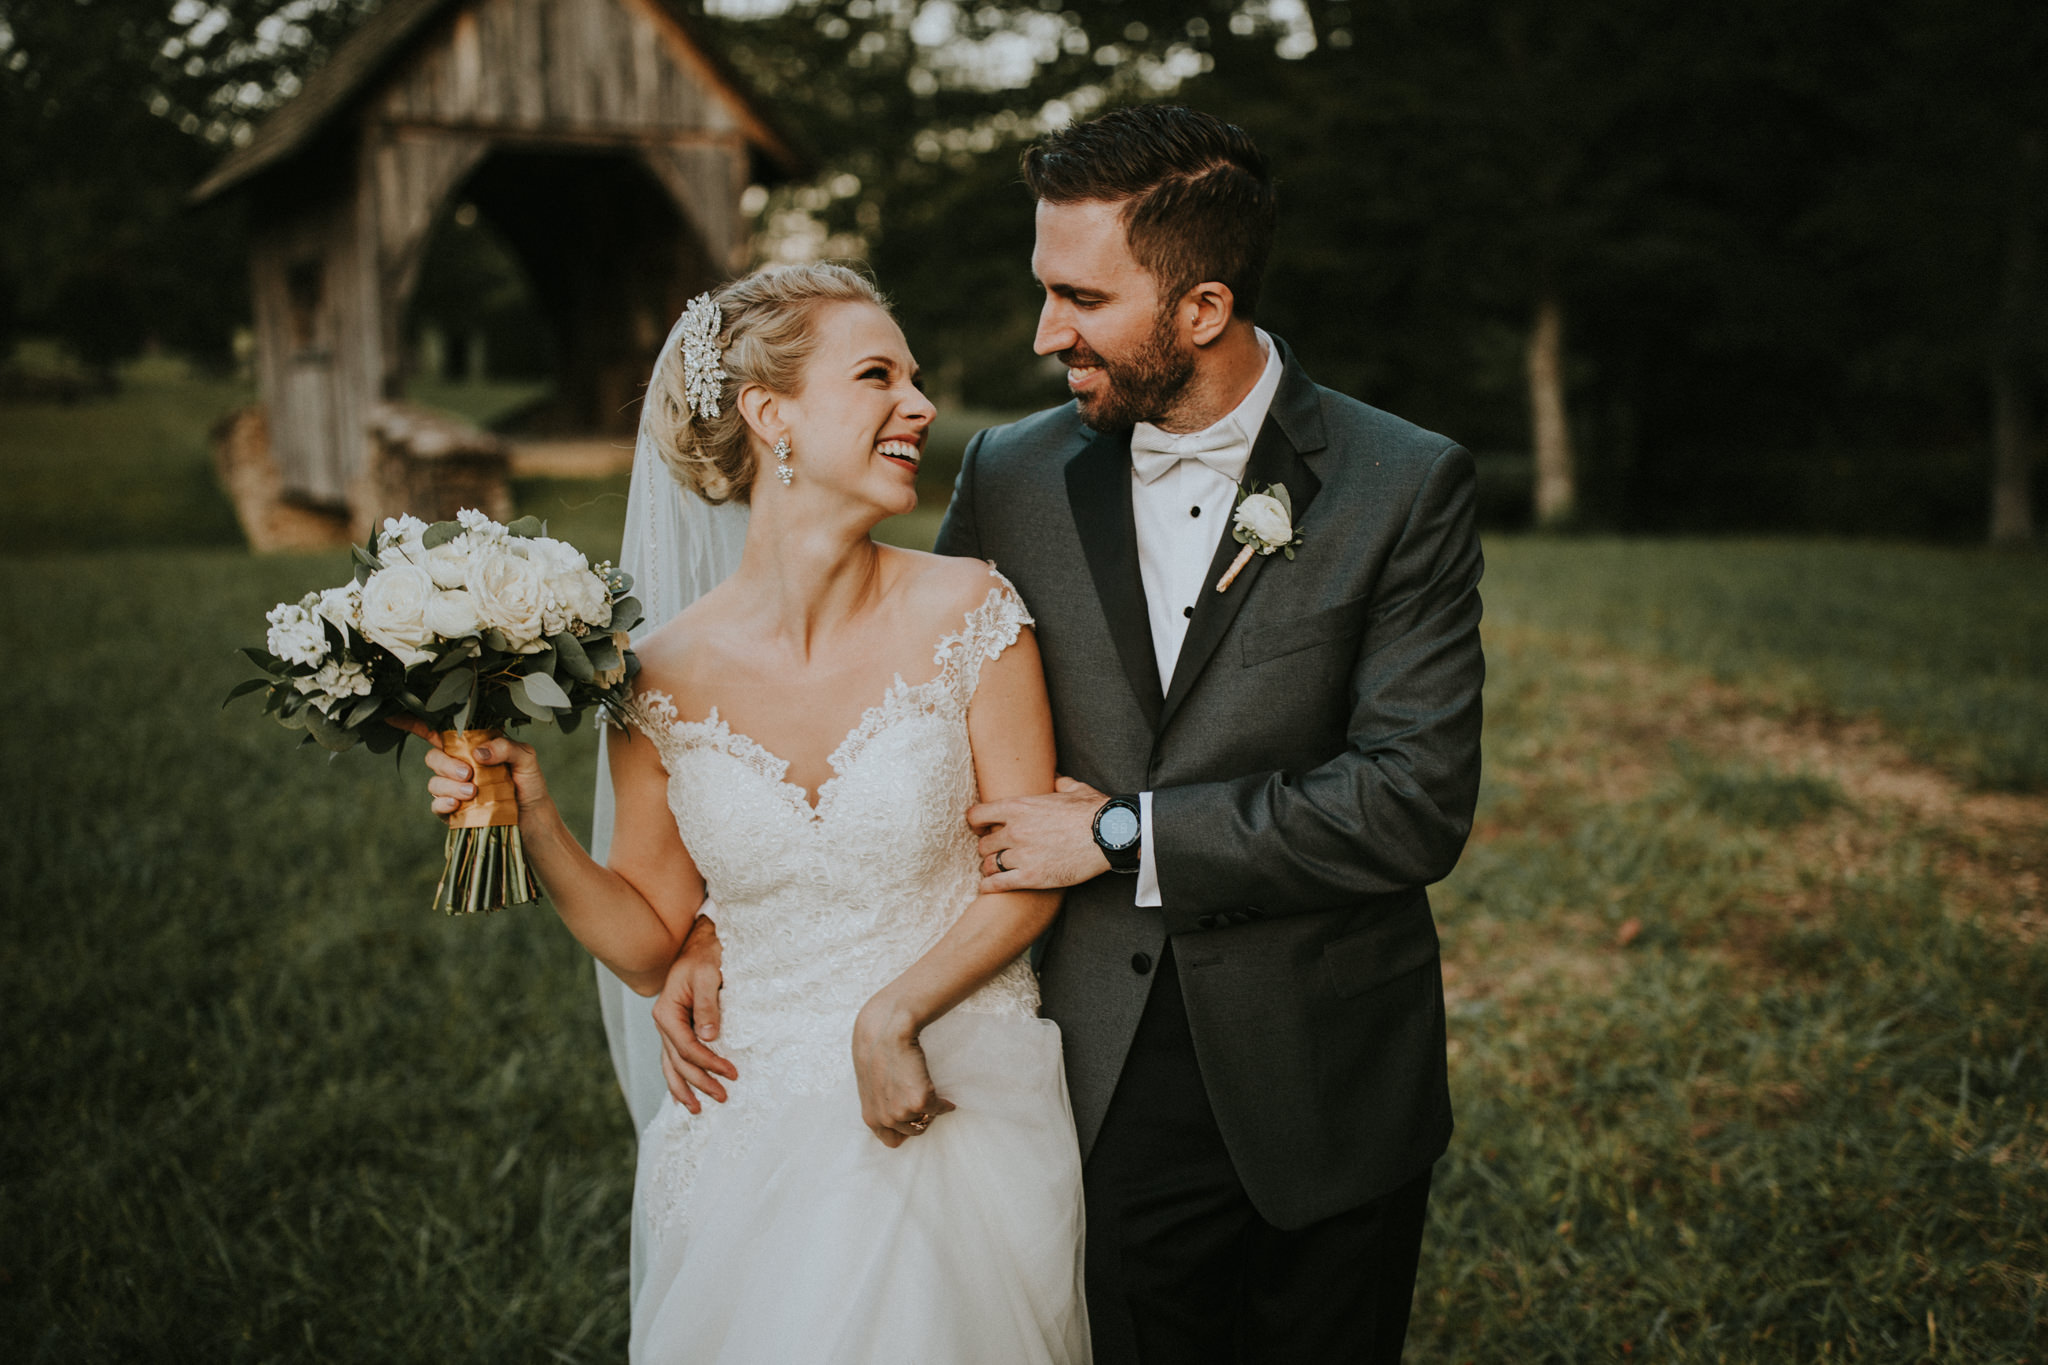 Wedding Photographer Des Moines